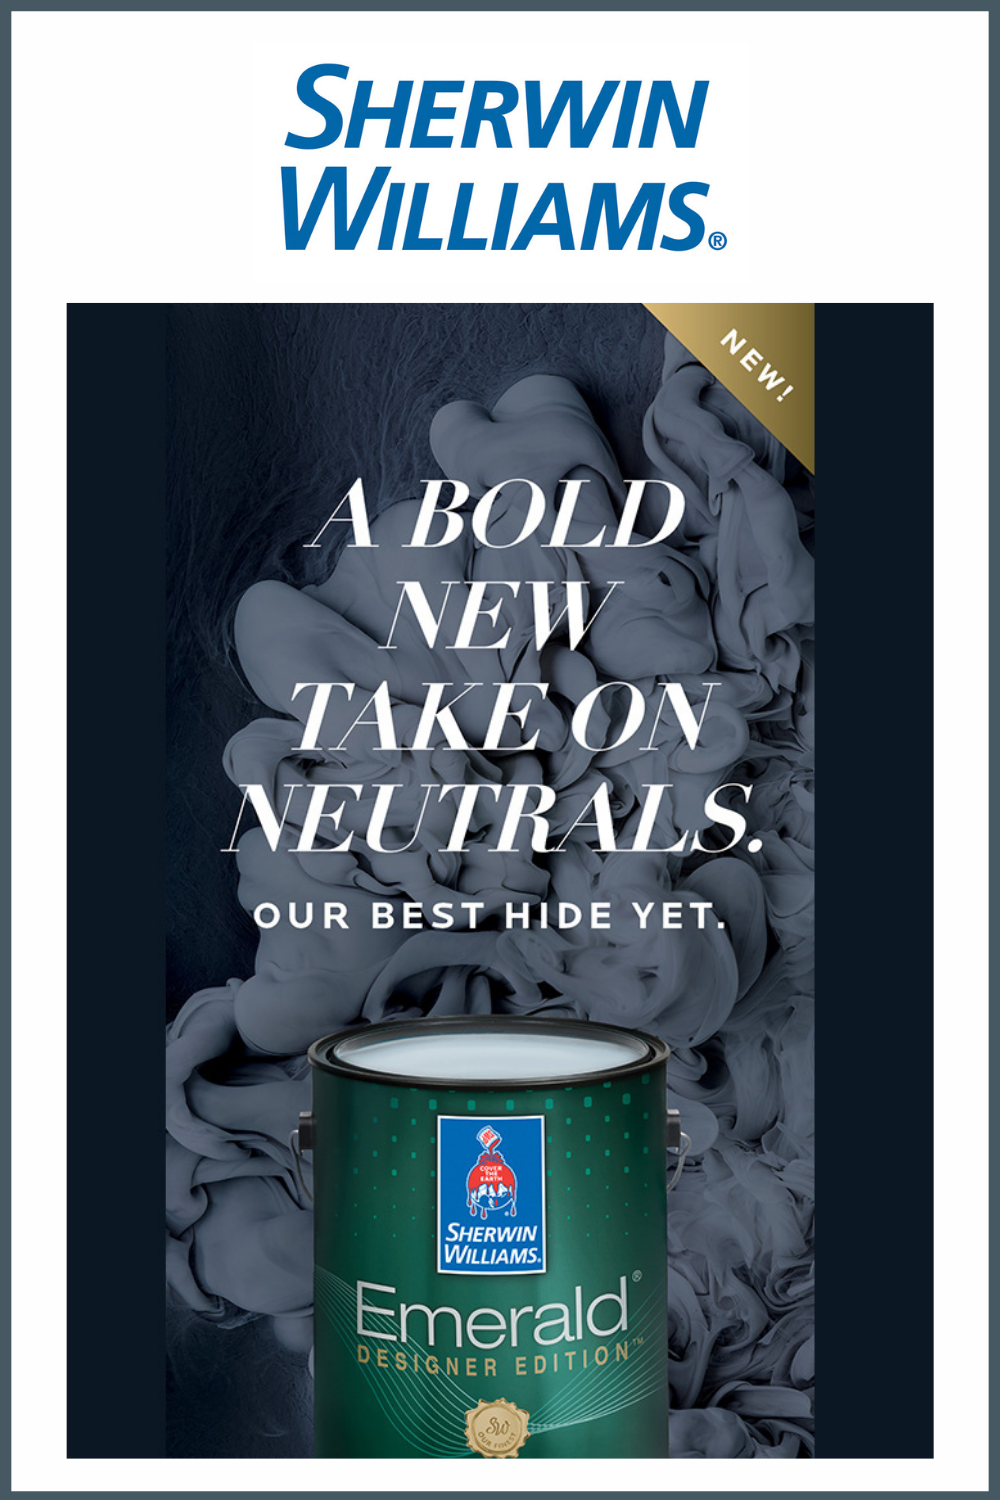 Sherwin Williams' new Emerald Collection